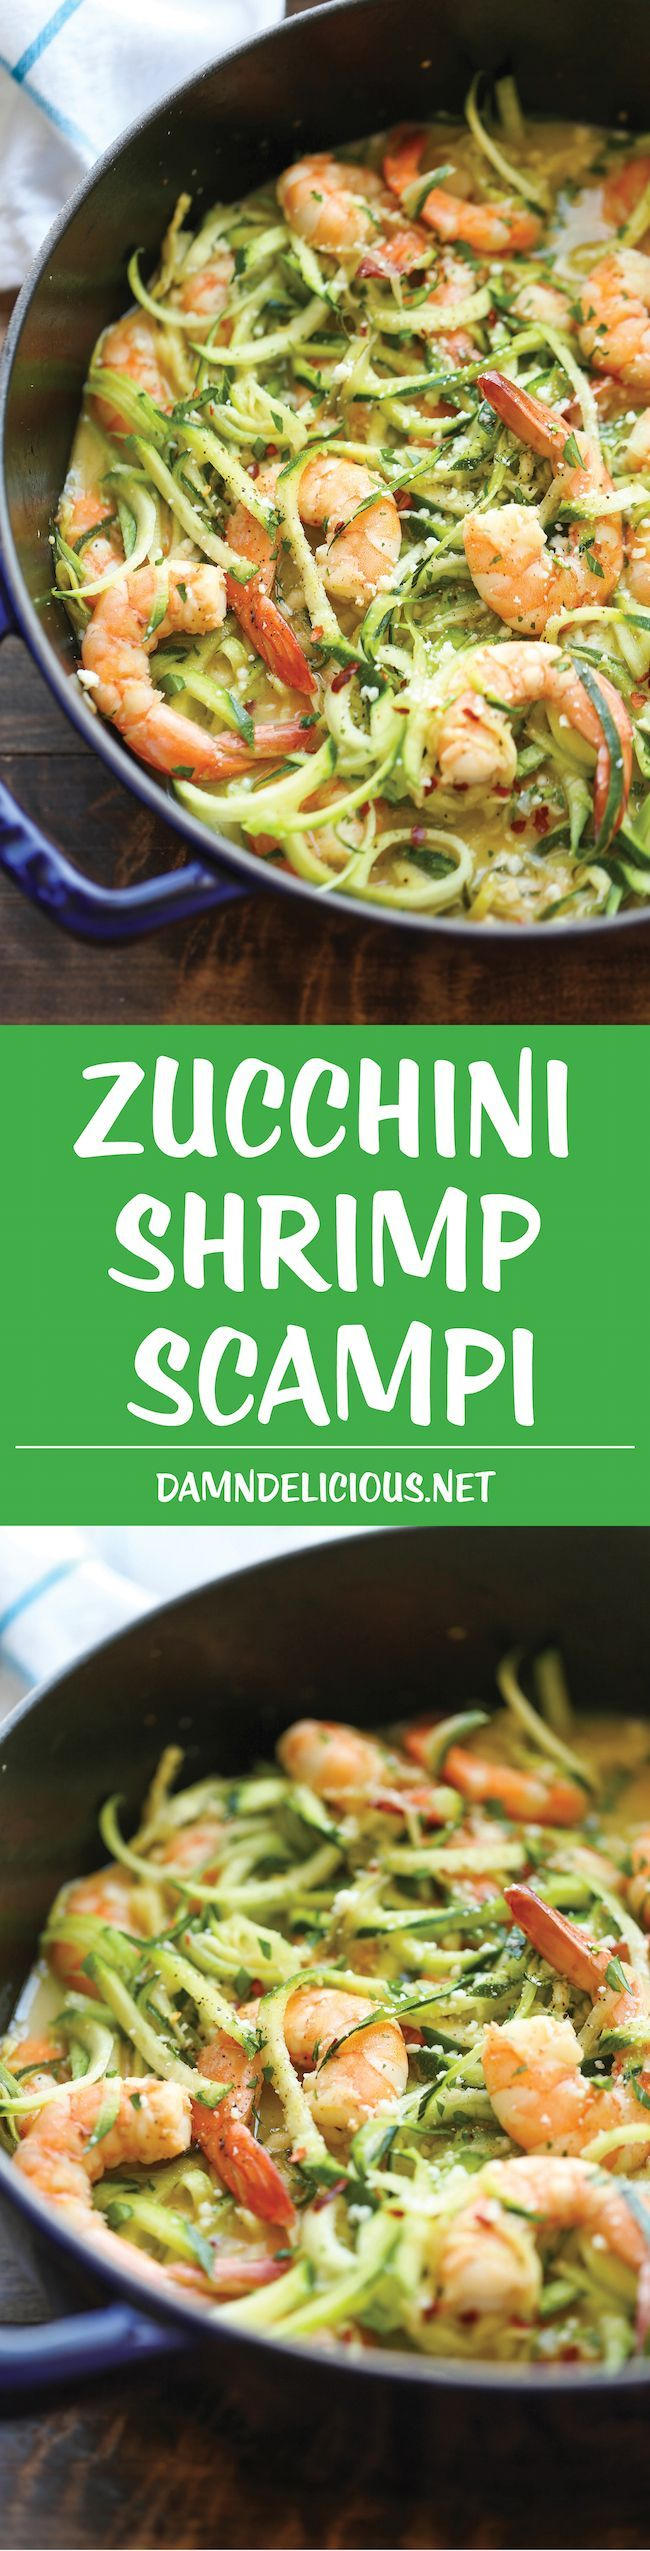 Zucchini Shrimp Scampi - Traditional shrimp scampi made into a low-carb dish with zucchini noodles. It's unbelievably easy, quick & healthy! 214.3 calories.